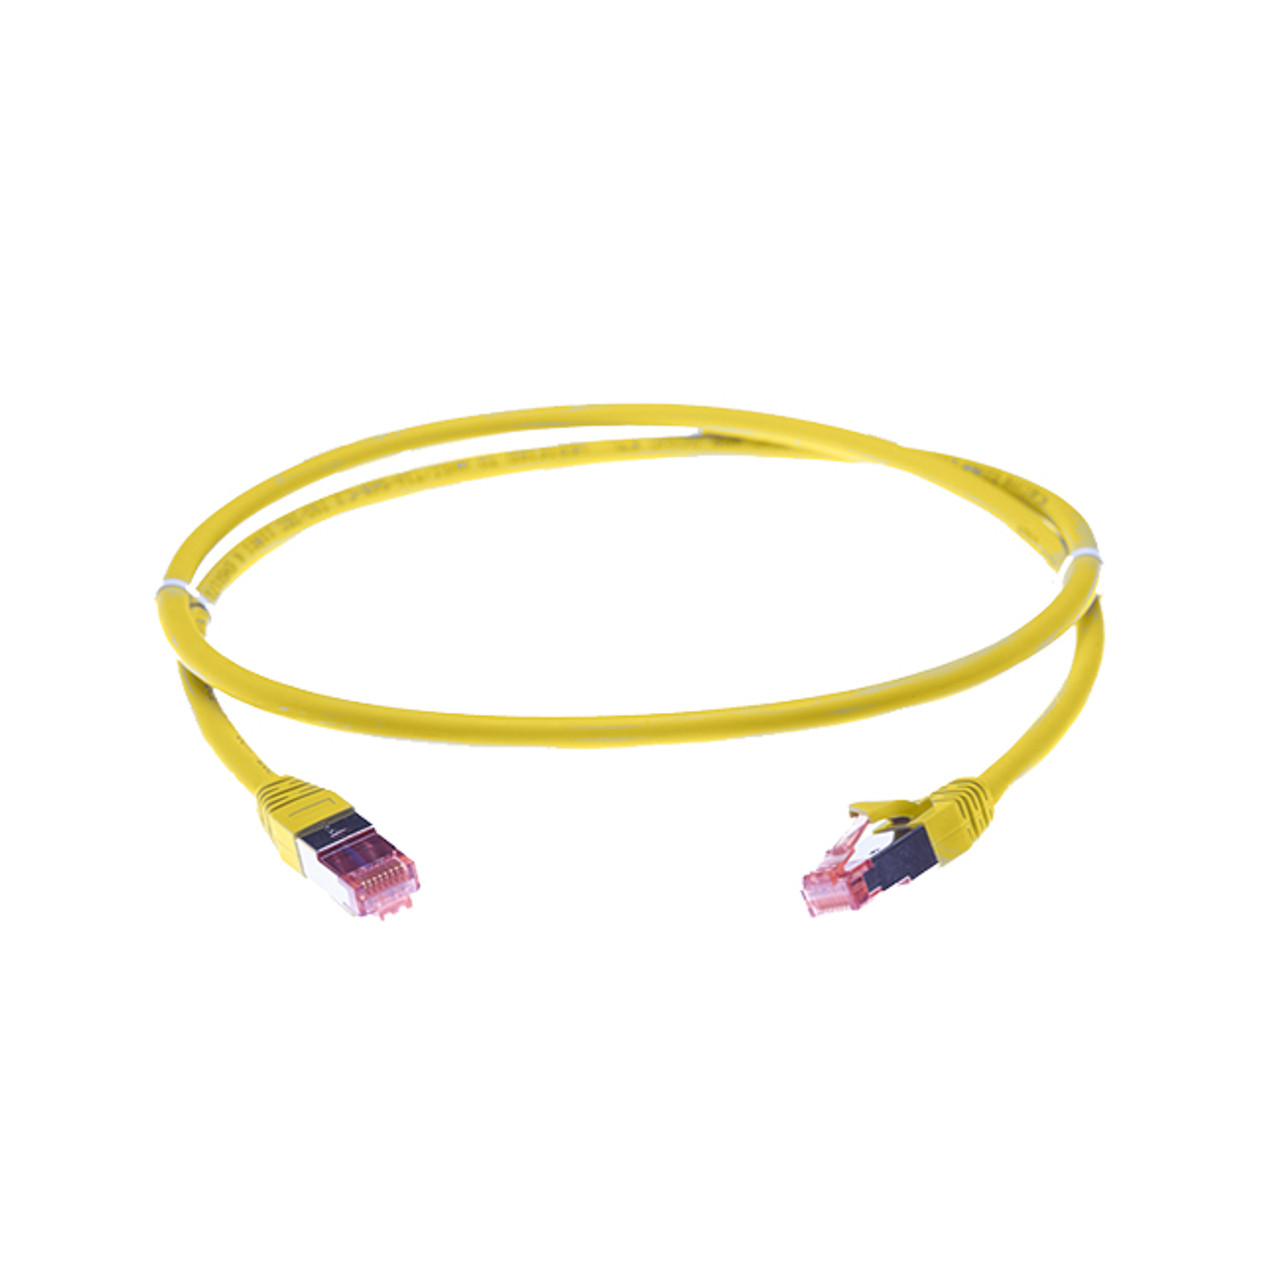 Image for 1.5m Cat 6A S/FTP LSZH Ethernet Network Cable. Yellow CX Computer Superstore